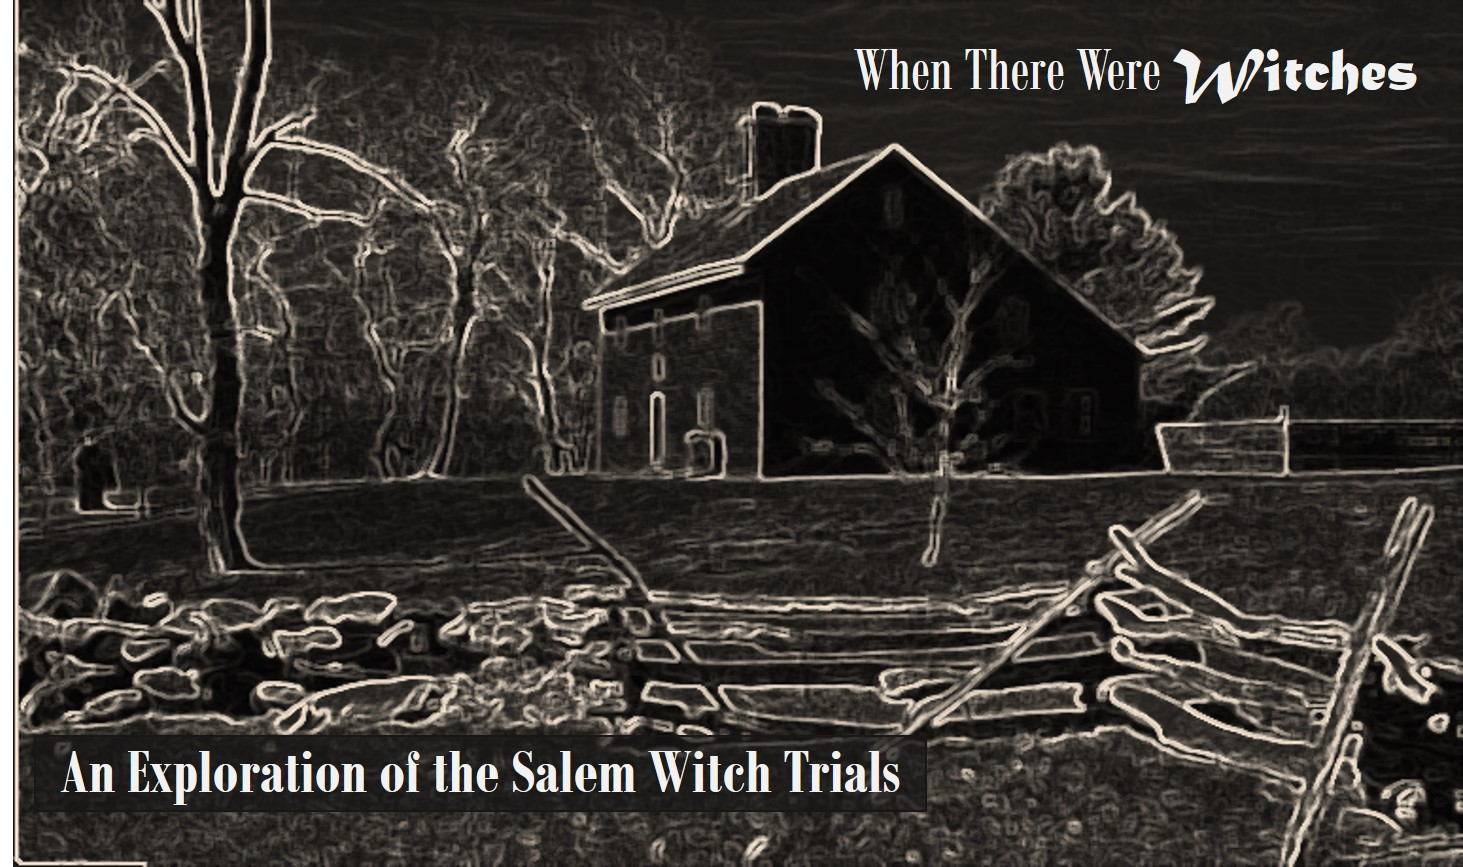 When There Were Witches: An Exploration of the Salem Witch Trials